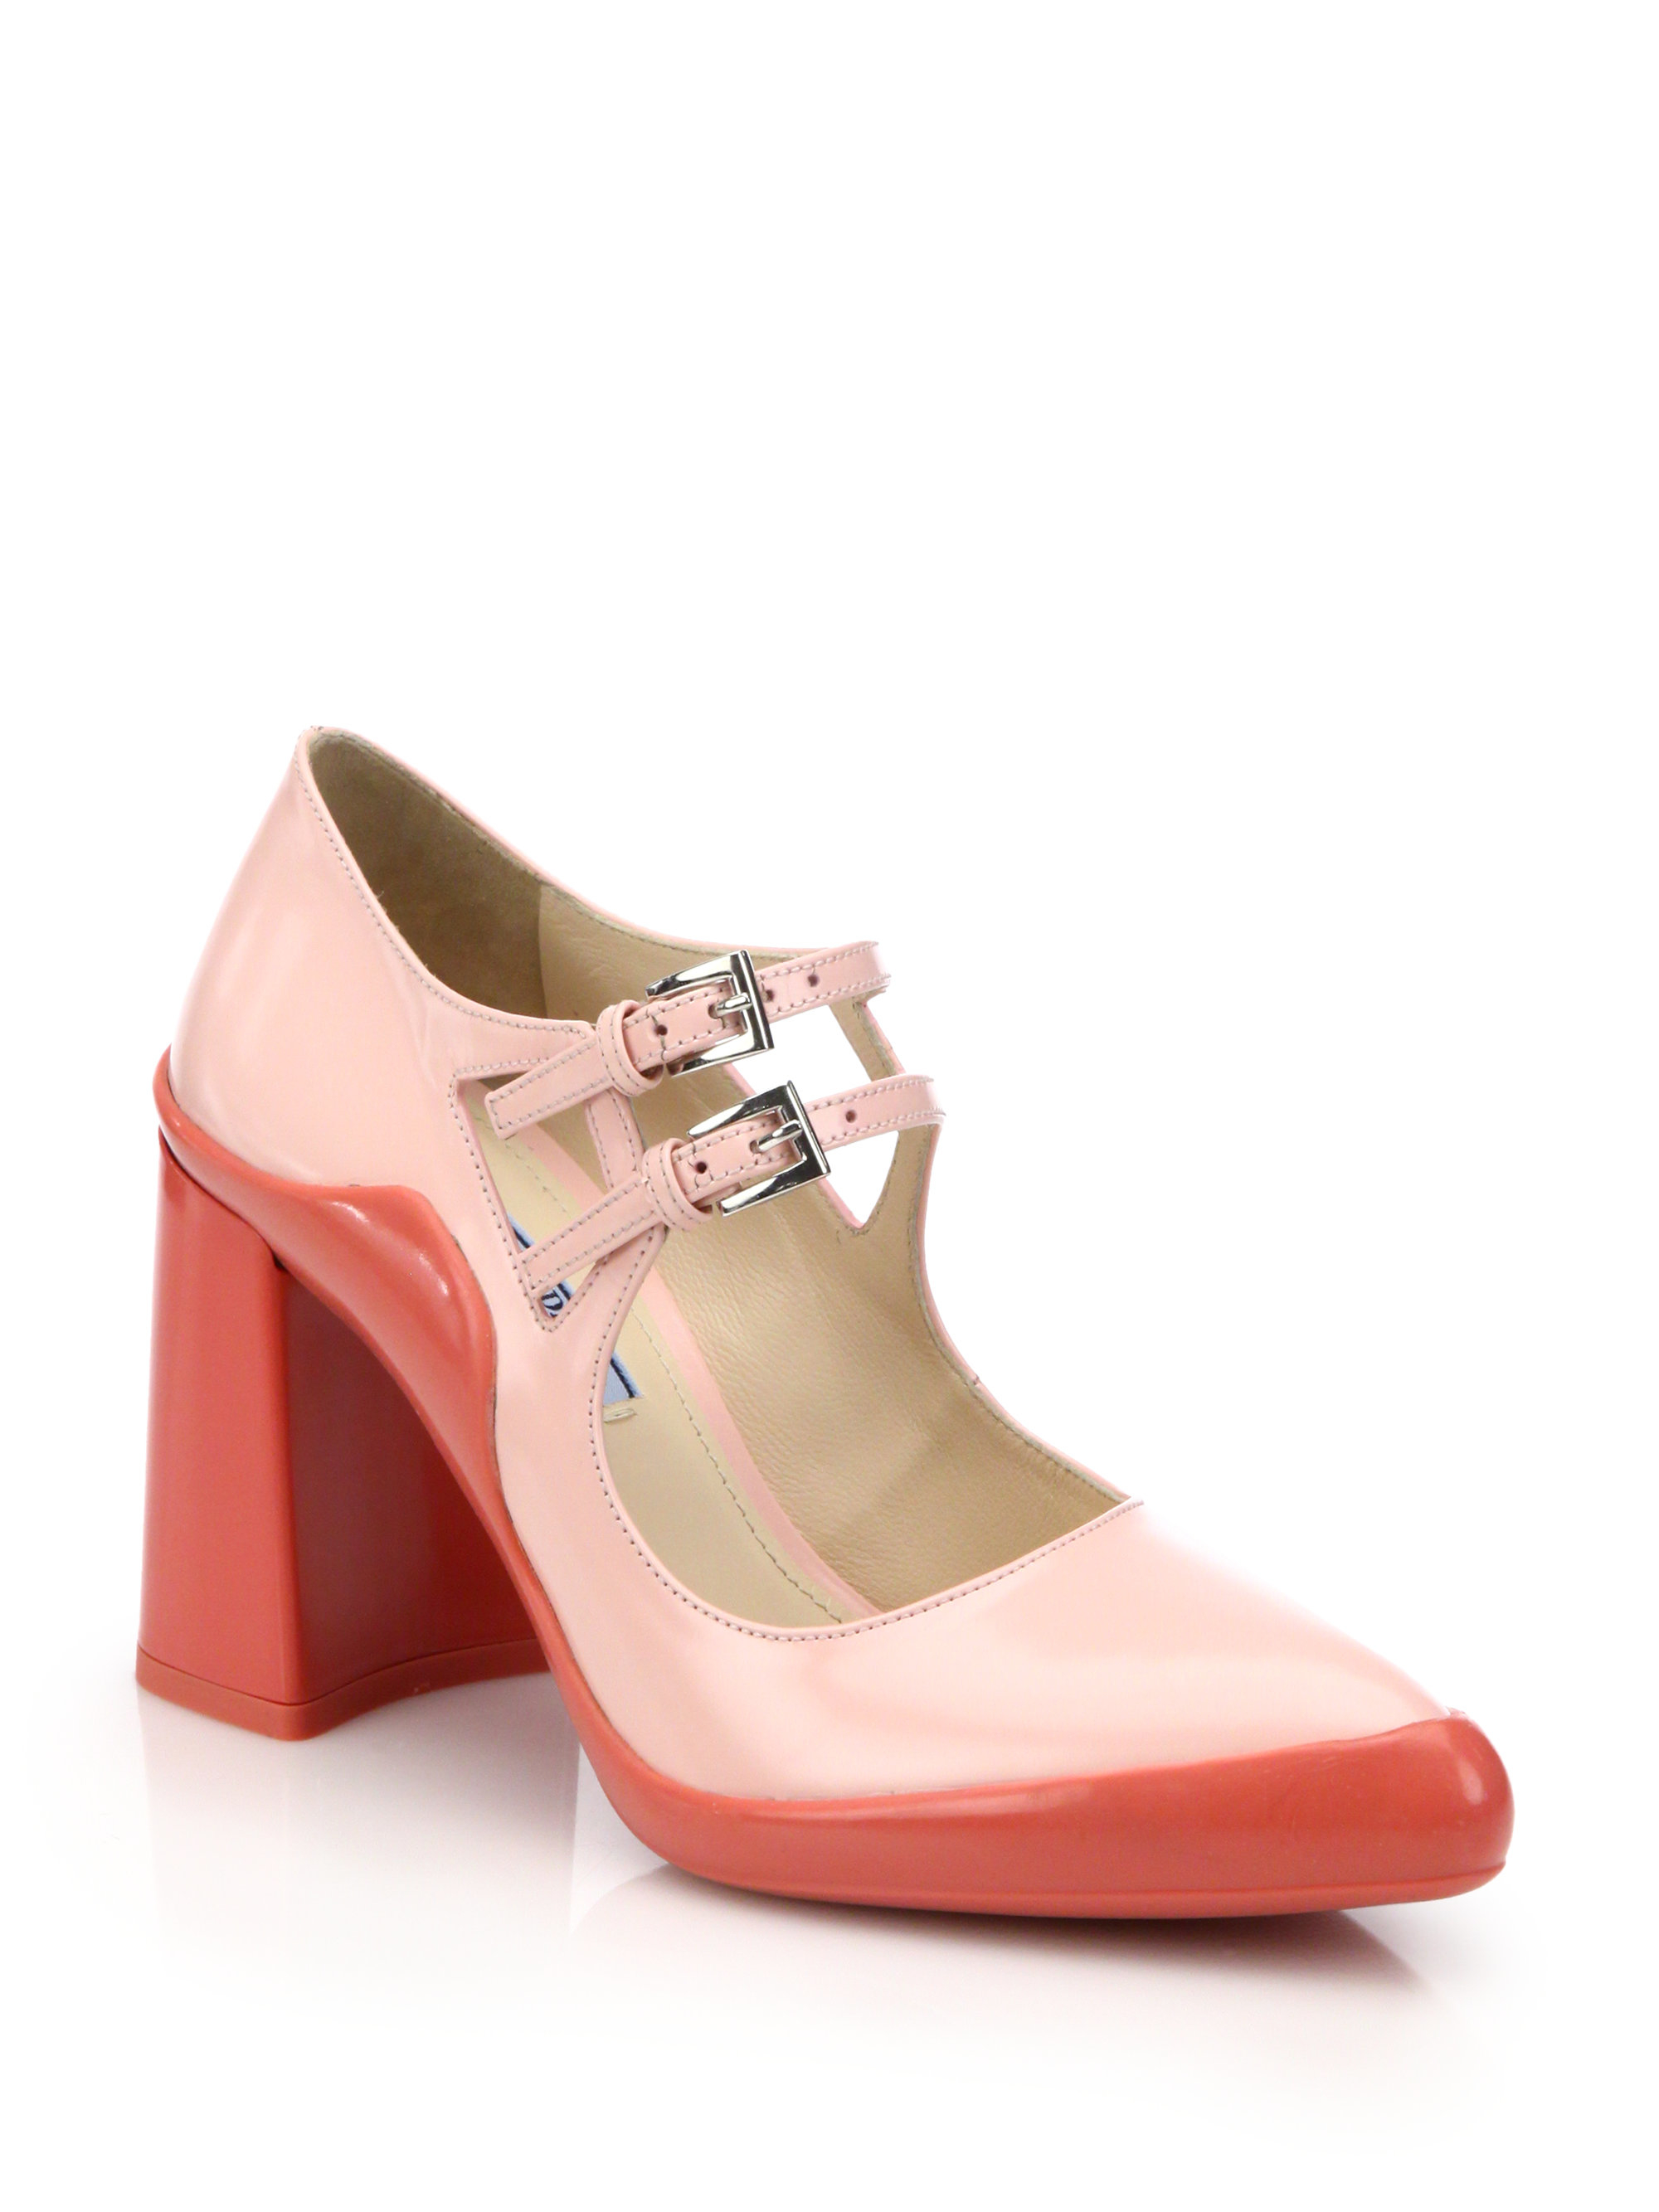 a26c21de8ddc Lyst - Prada Two-tone Leather Mary Jane Pumps in Pink